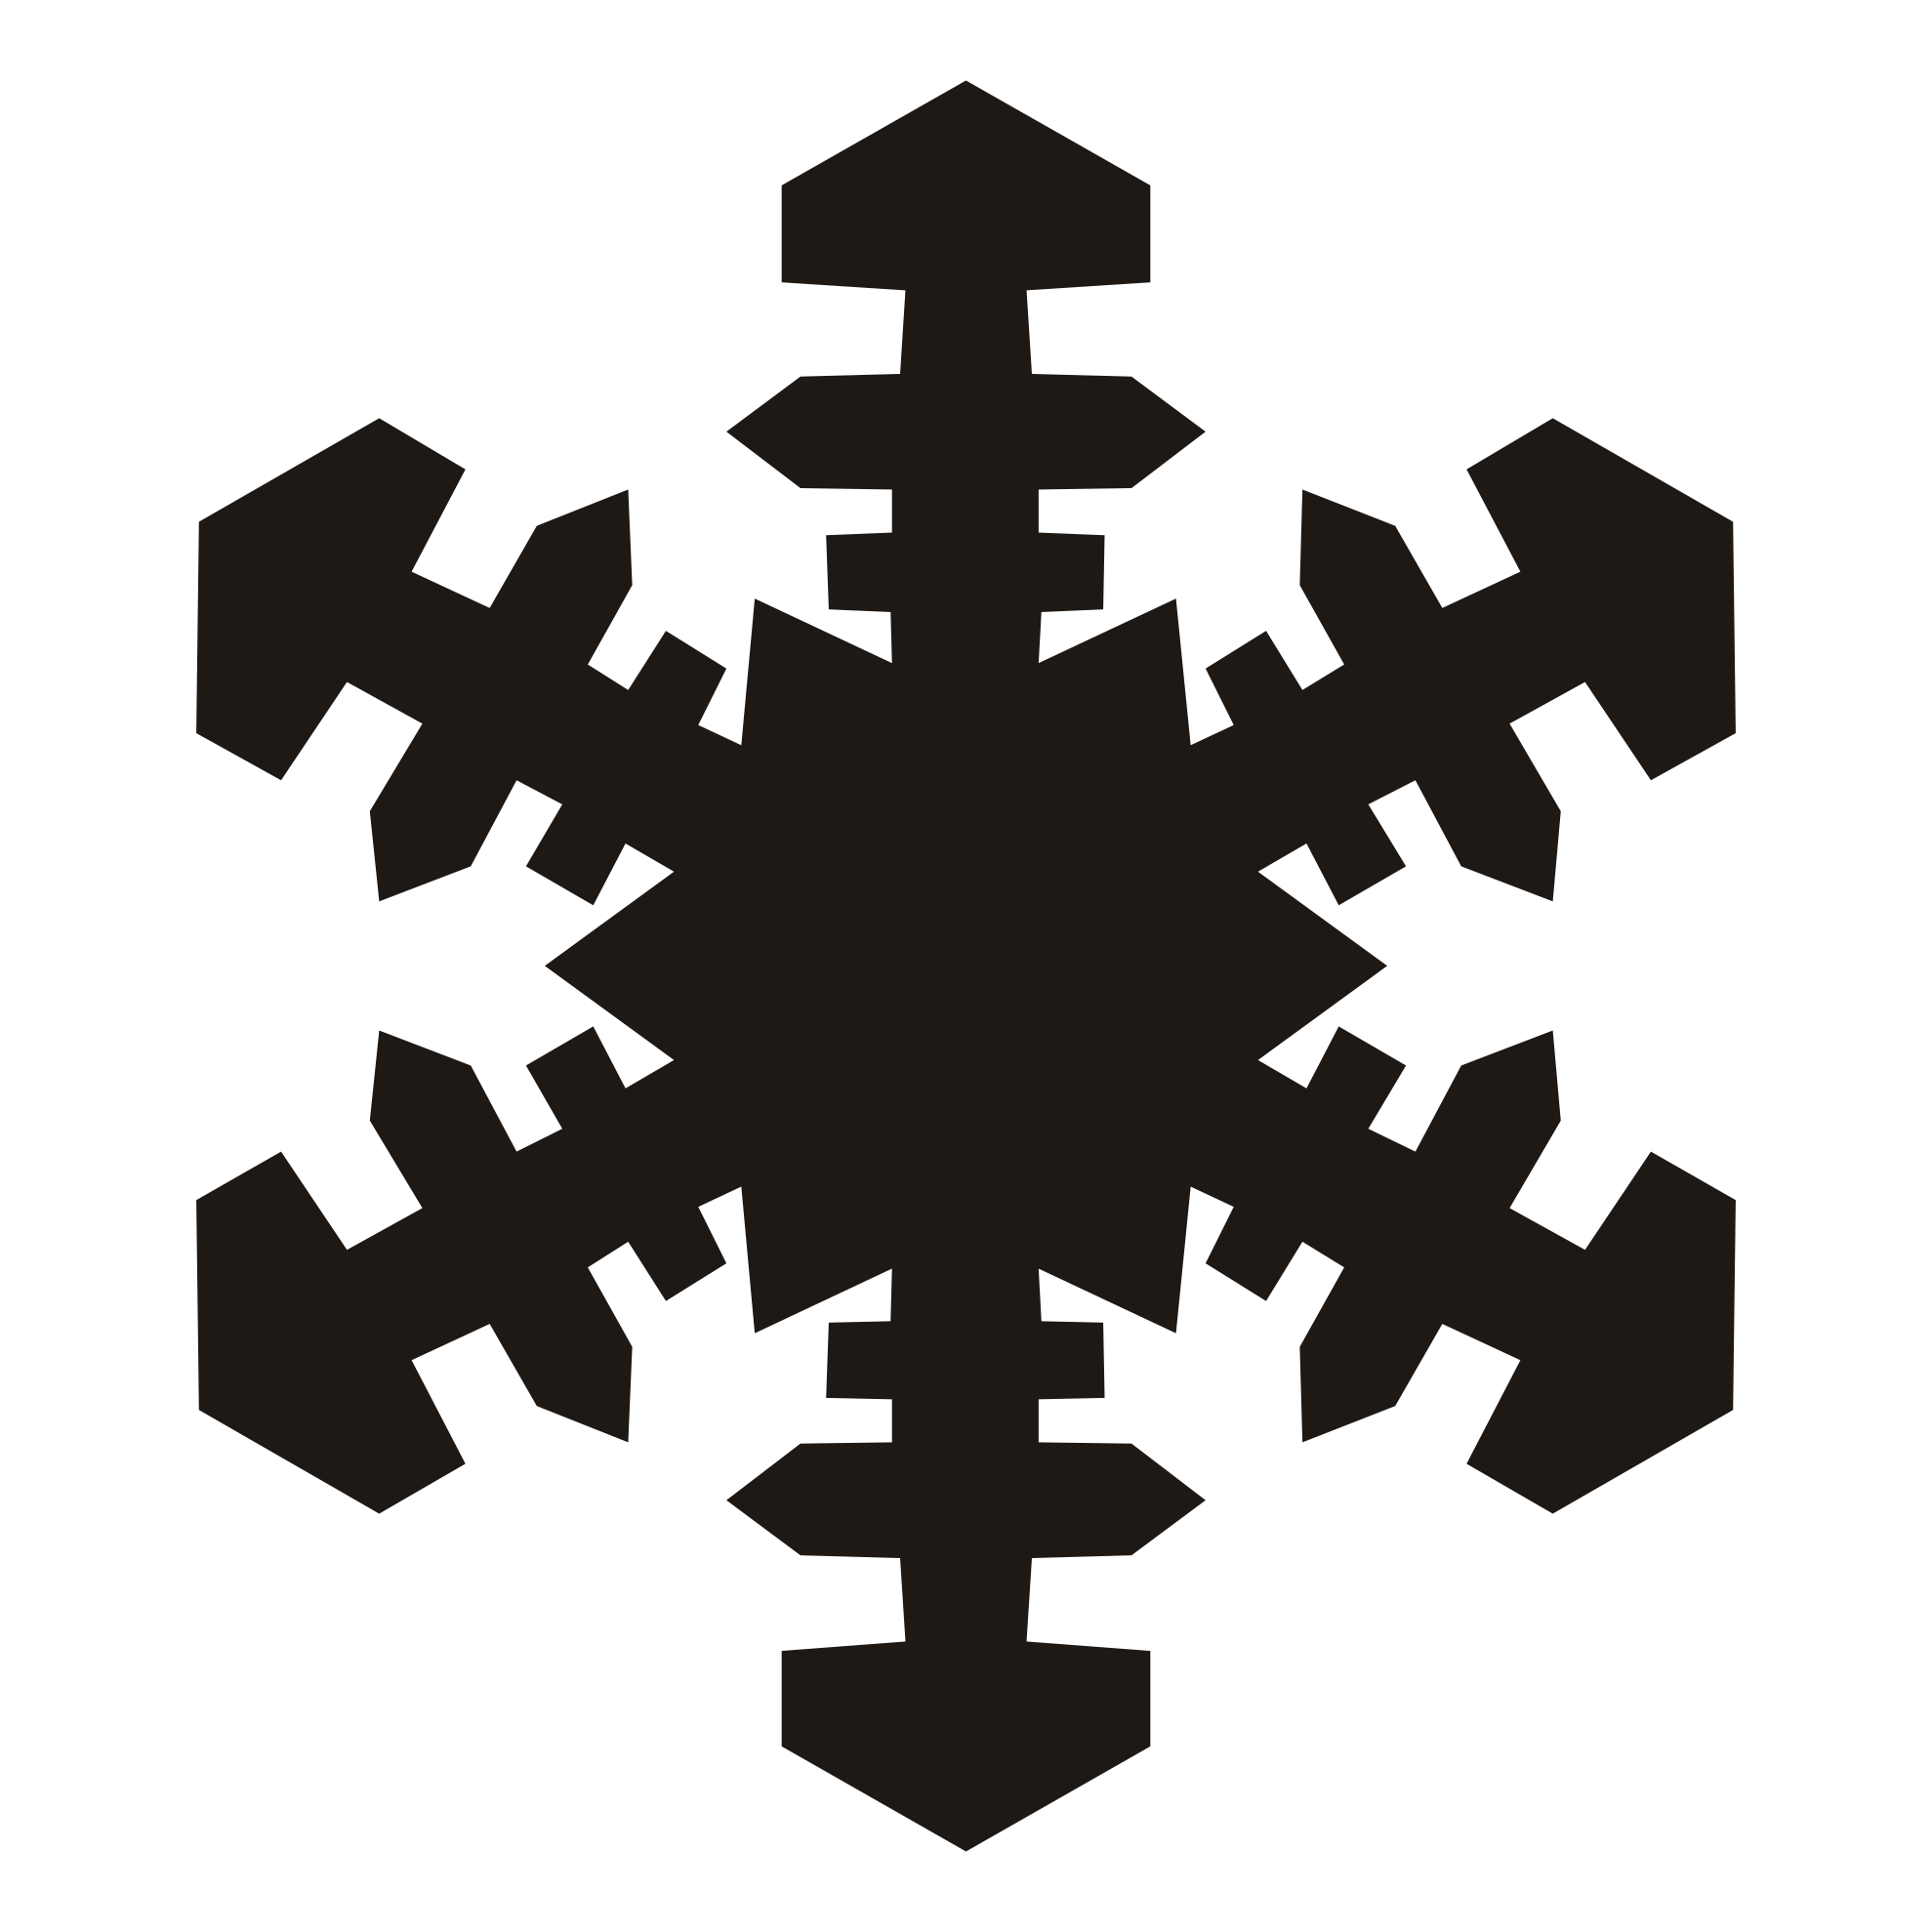 Snowflake silhouette png. Cliparts zone within o